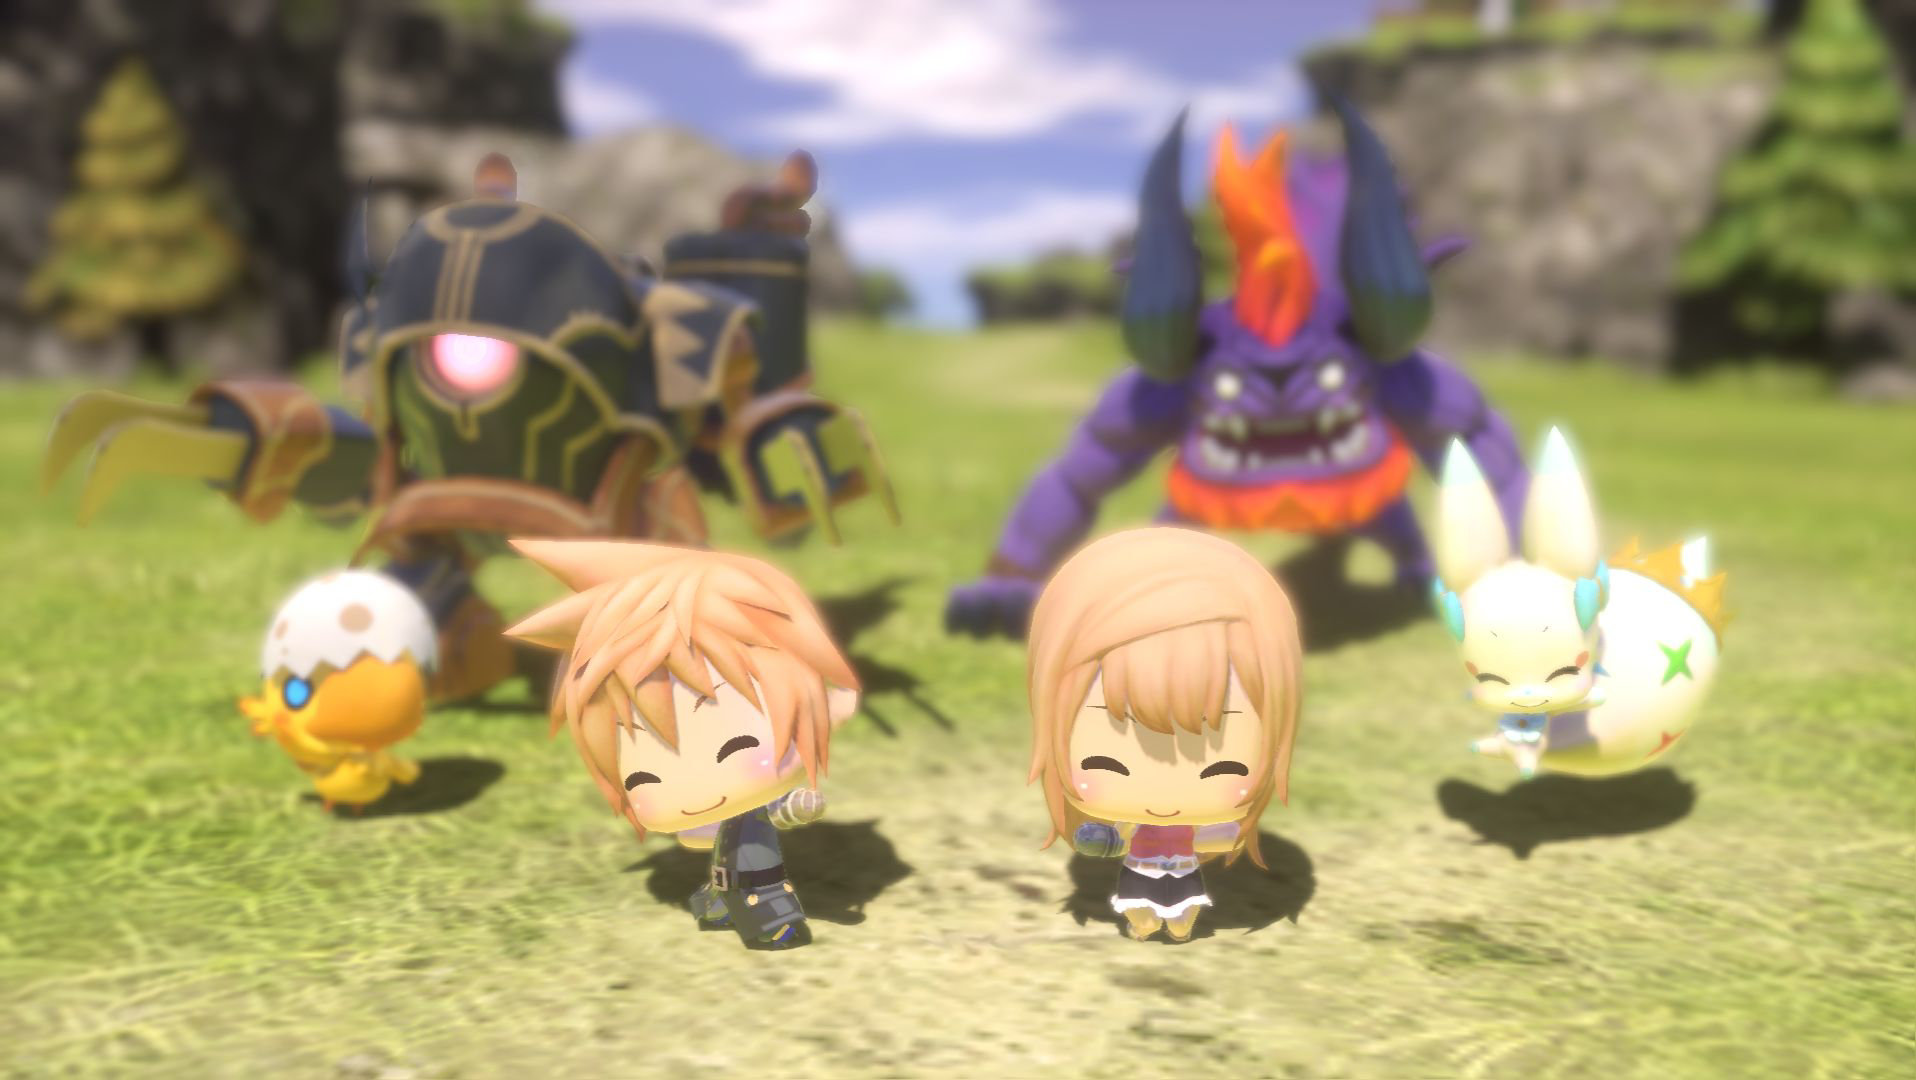 world-of-final-fantasy-screen-02-us-17ju